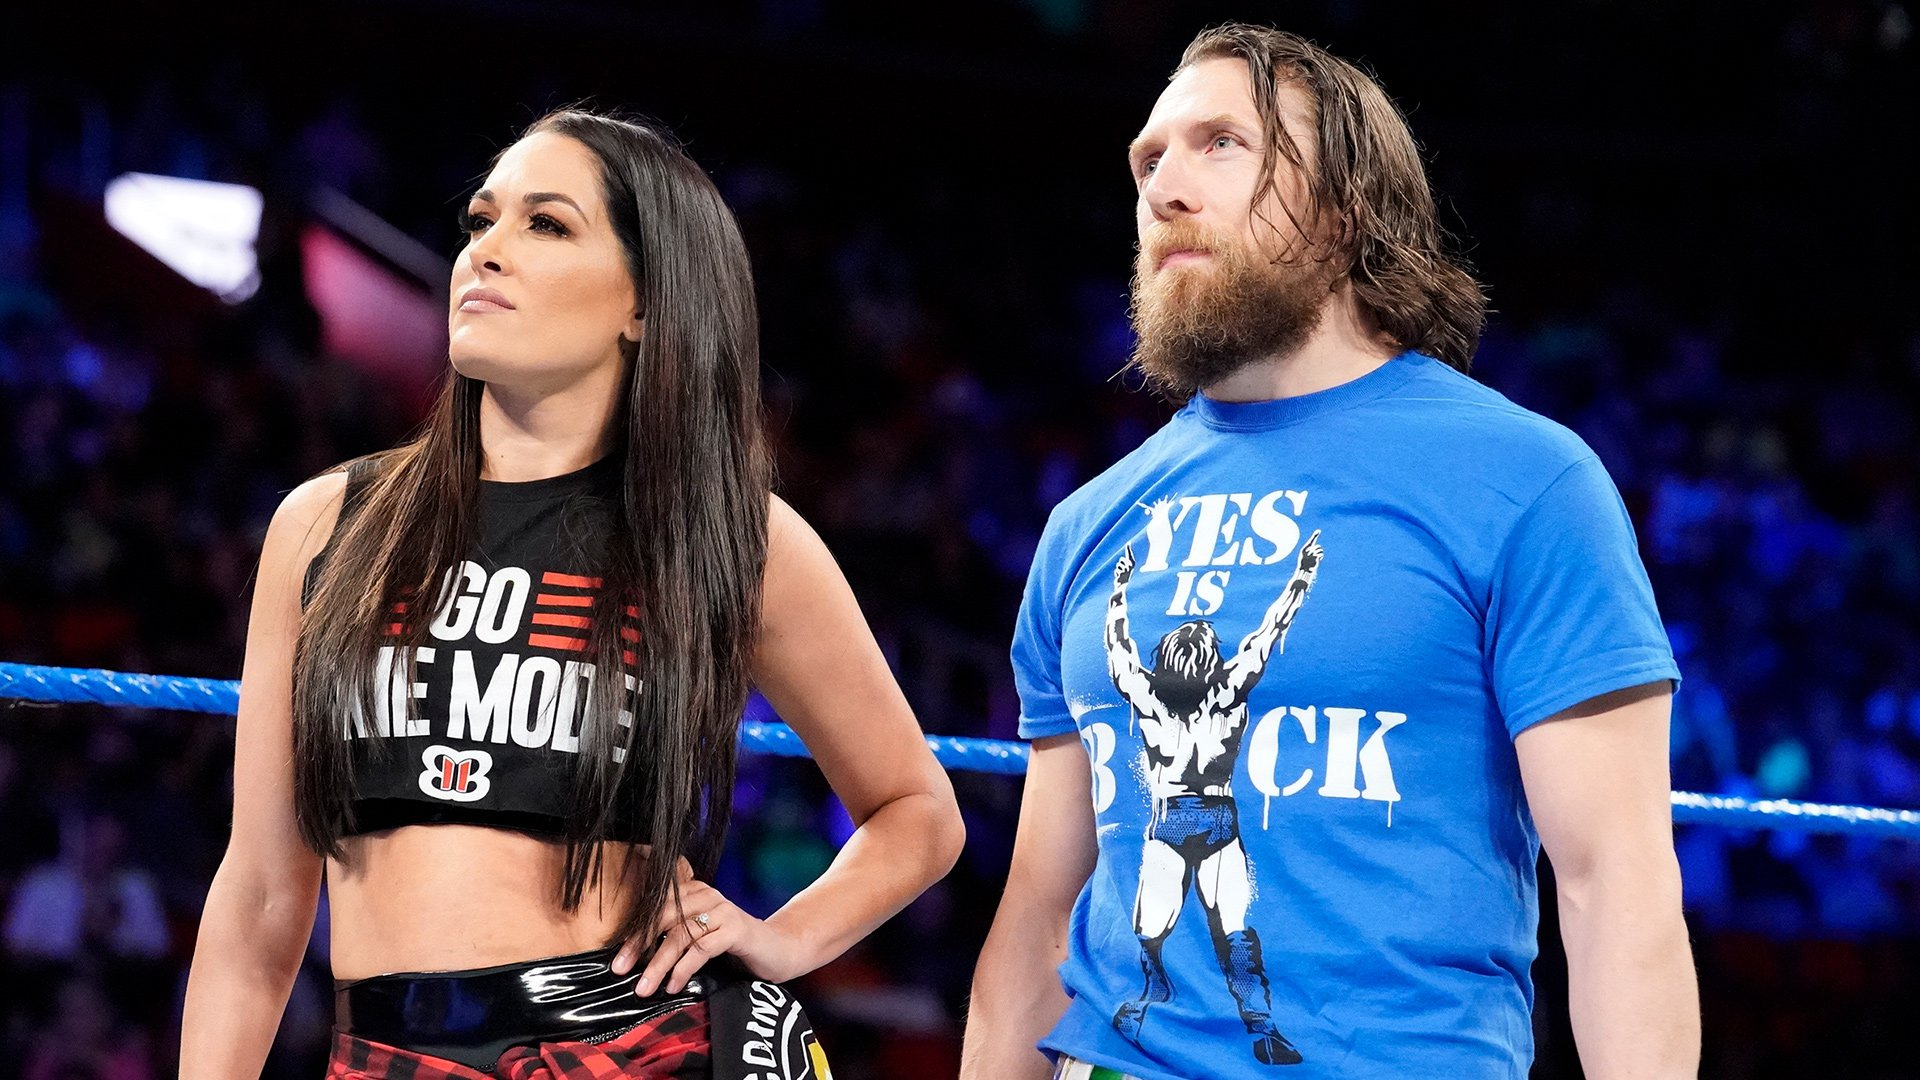 Daniel Bryan Reacts To Fans Cyberbullying Brie Bella For Injuring